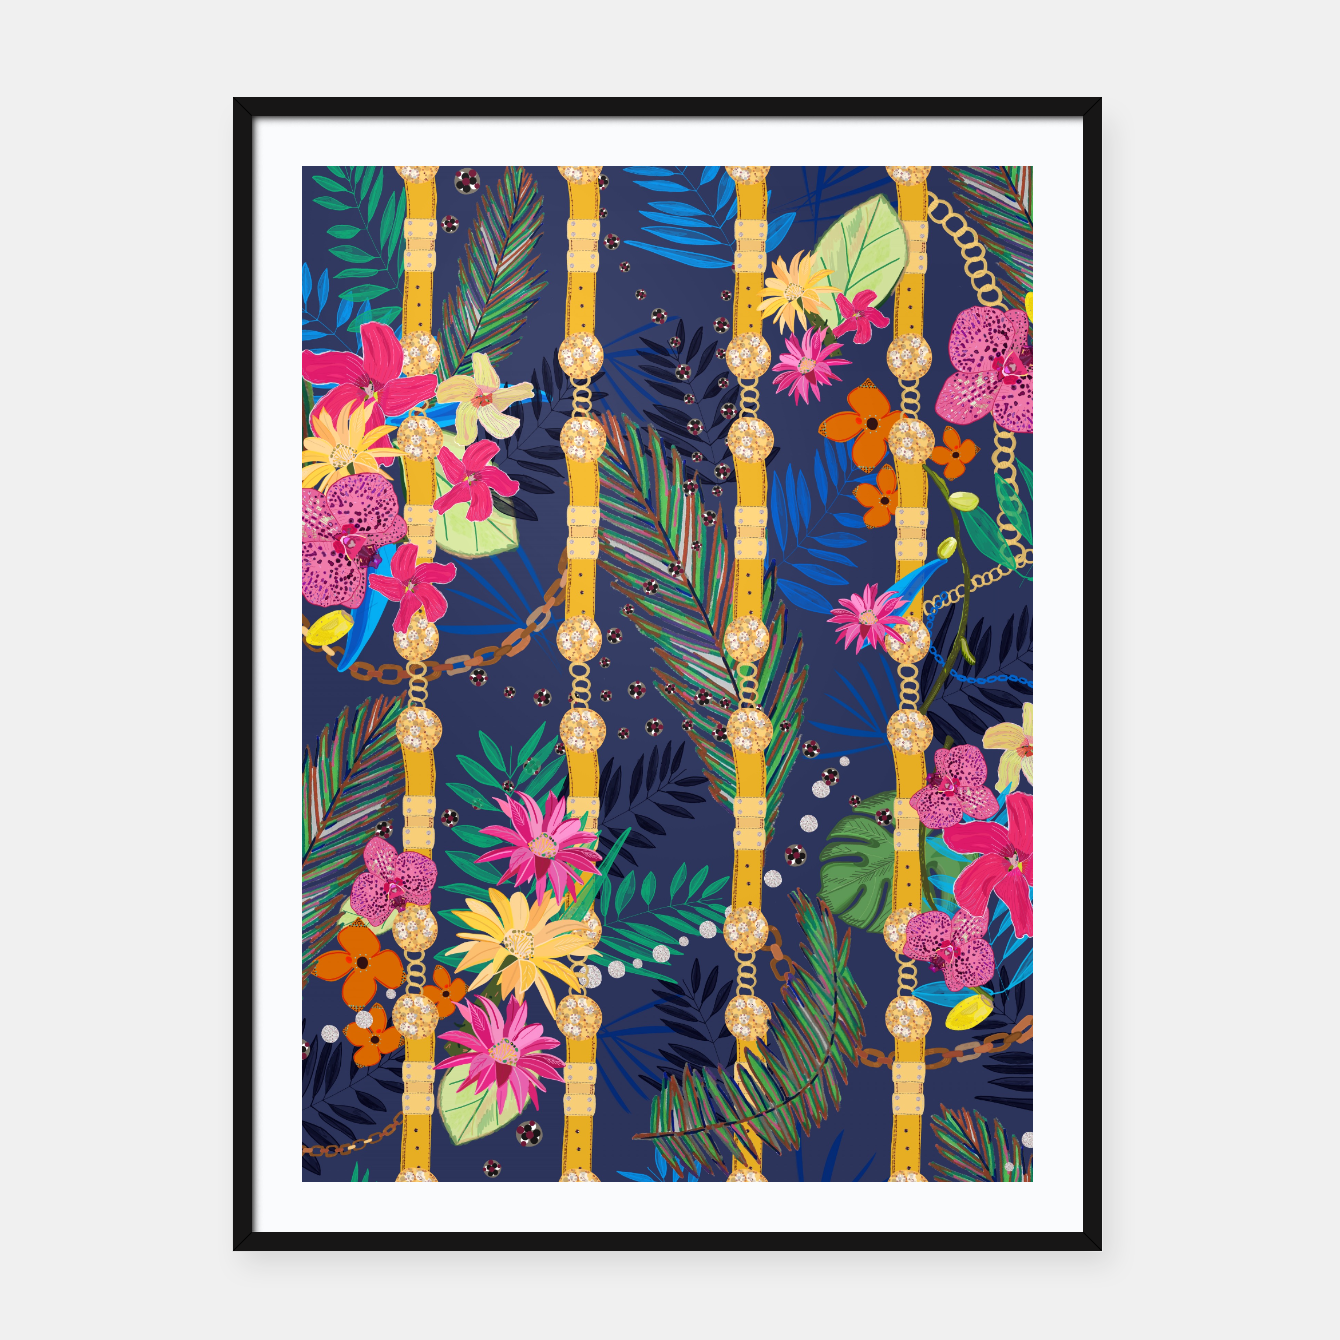 Zdjęcie Tropical flowers golden belt and chain vibrant colored trendy Framed poster - Live Heroes